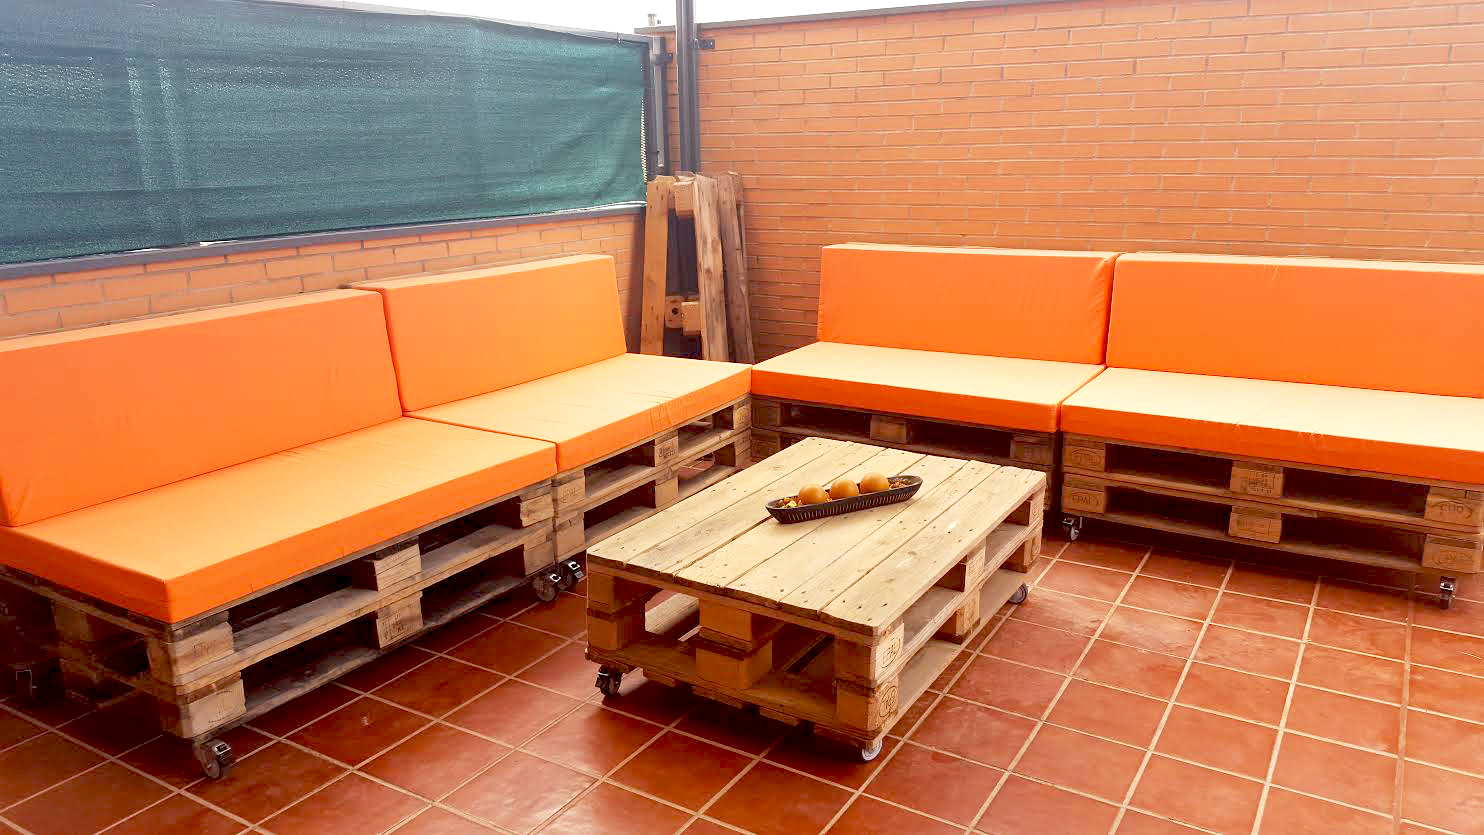 Decoracion Chill Out Exteriores Hazte Una Zona Chill Out Con Palets Vivienda Saludable